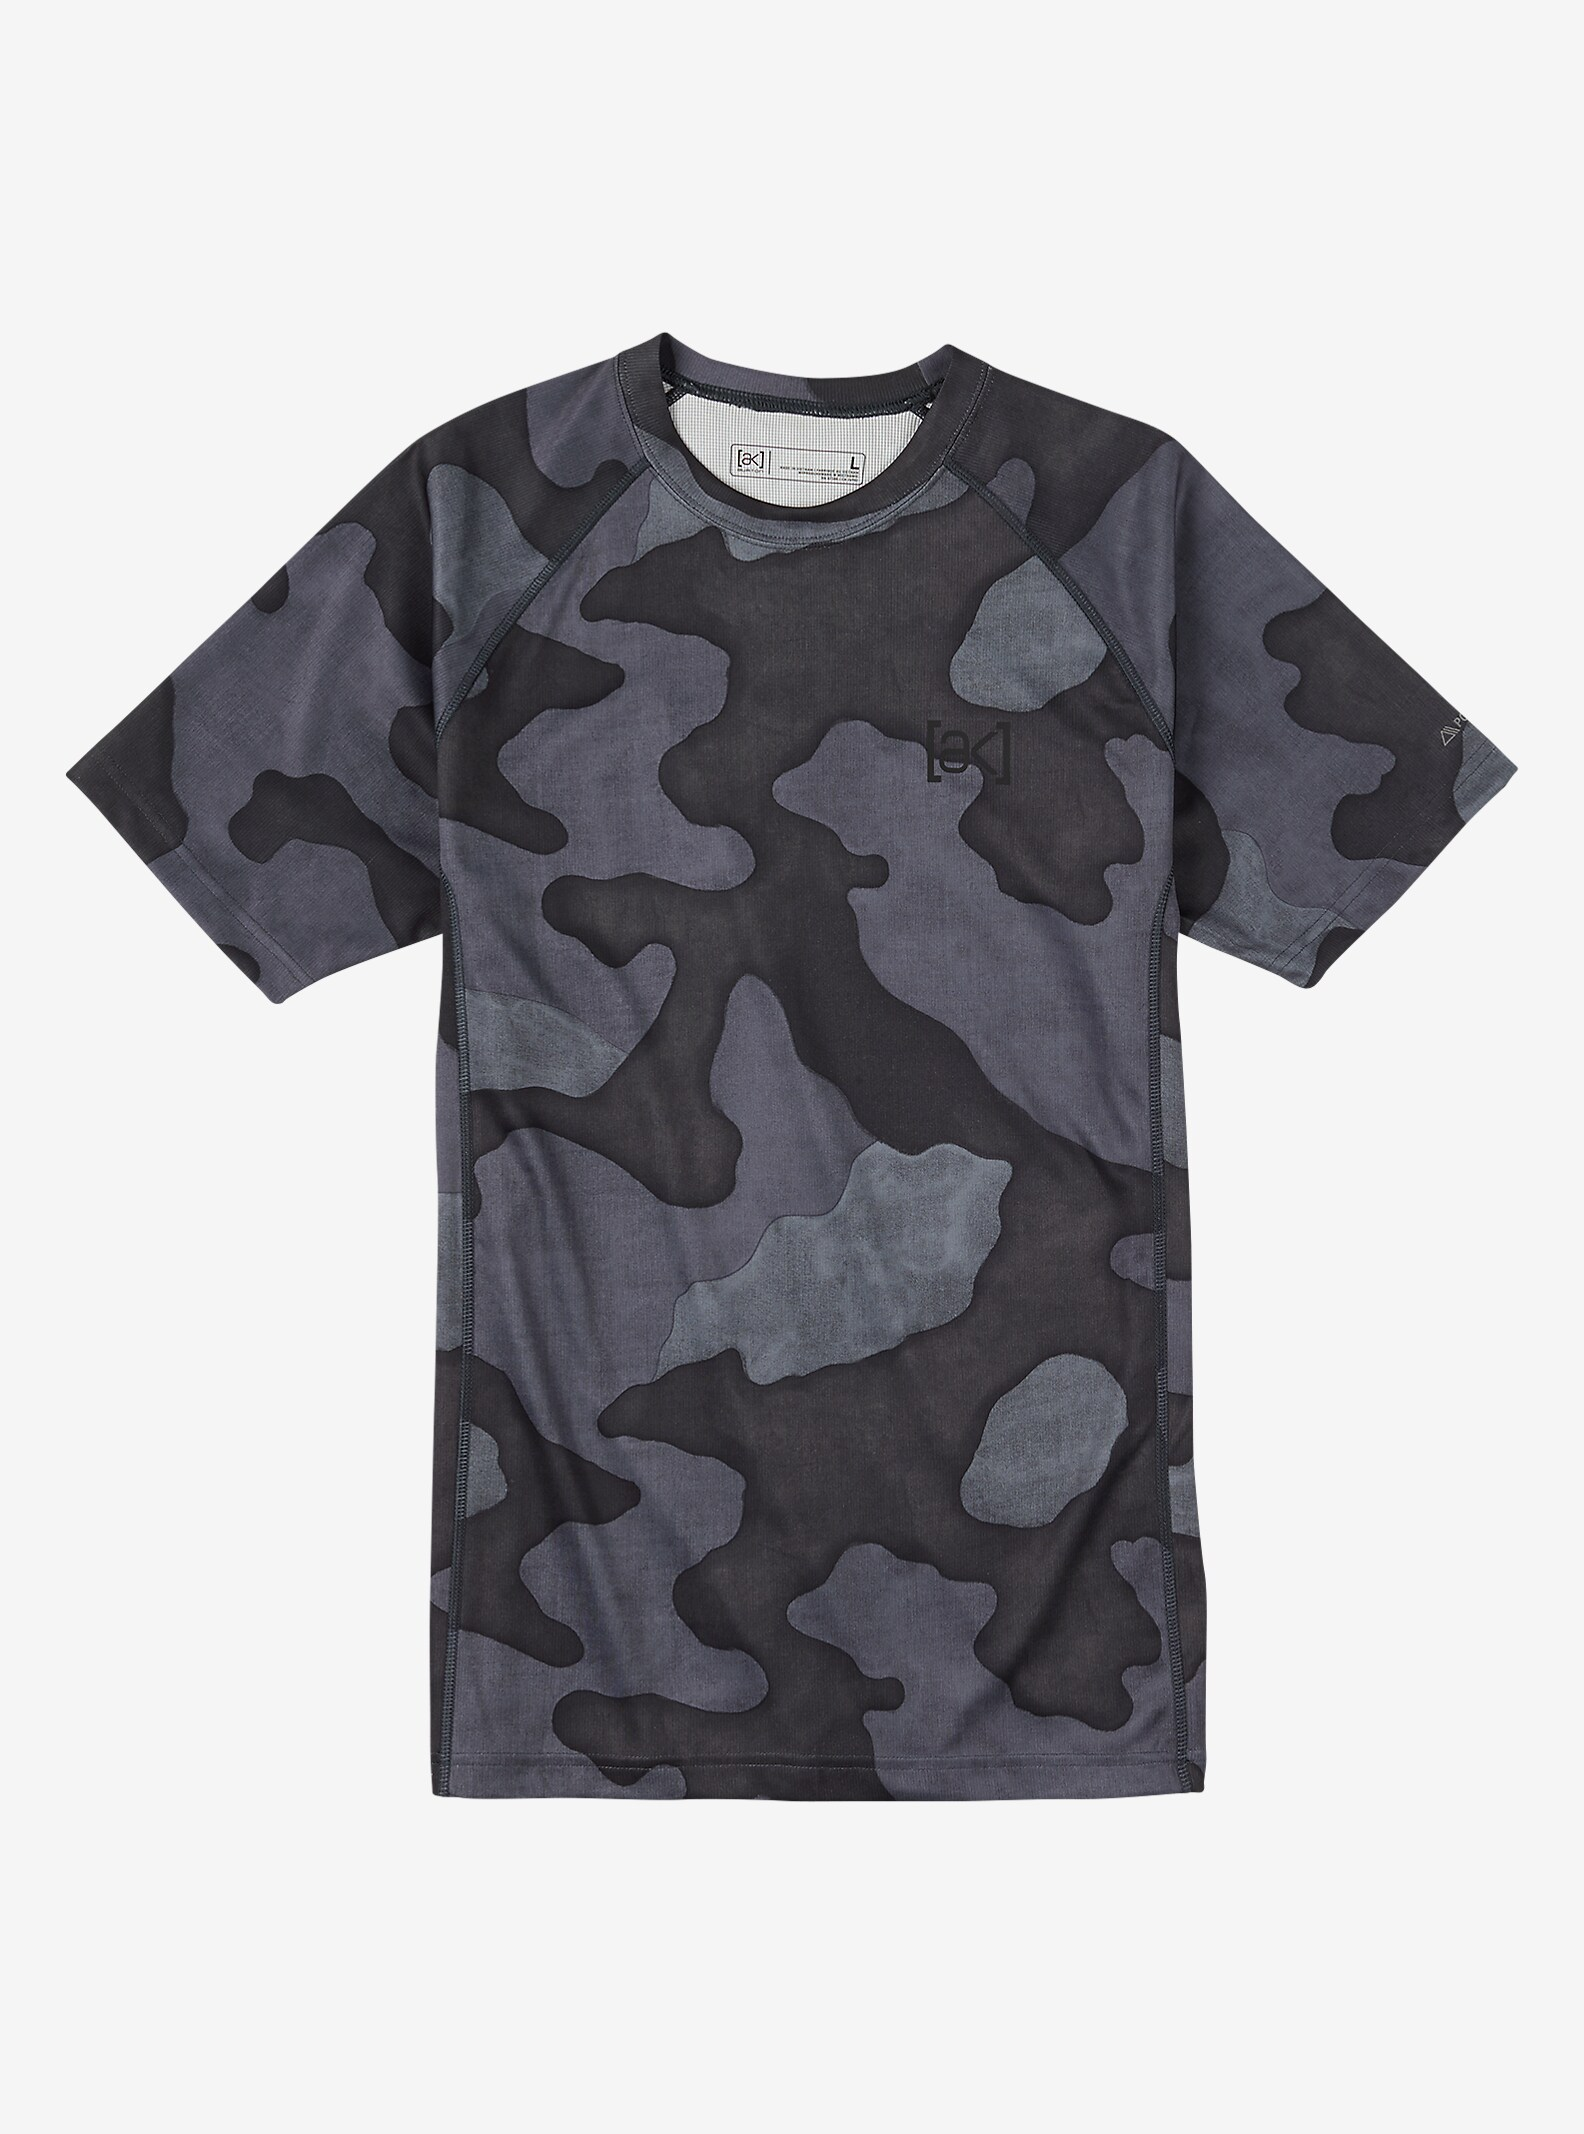 Burton [ak] Power Grid® SS Crew shown in Black Hombre Camo